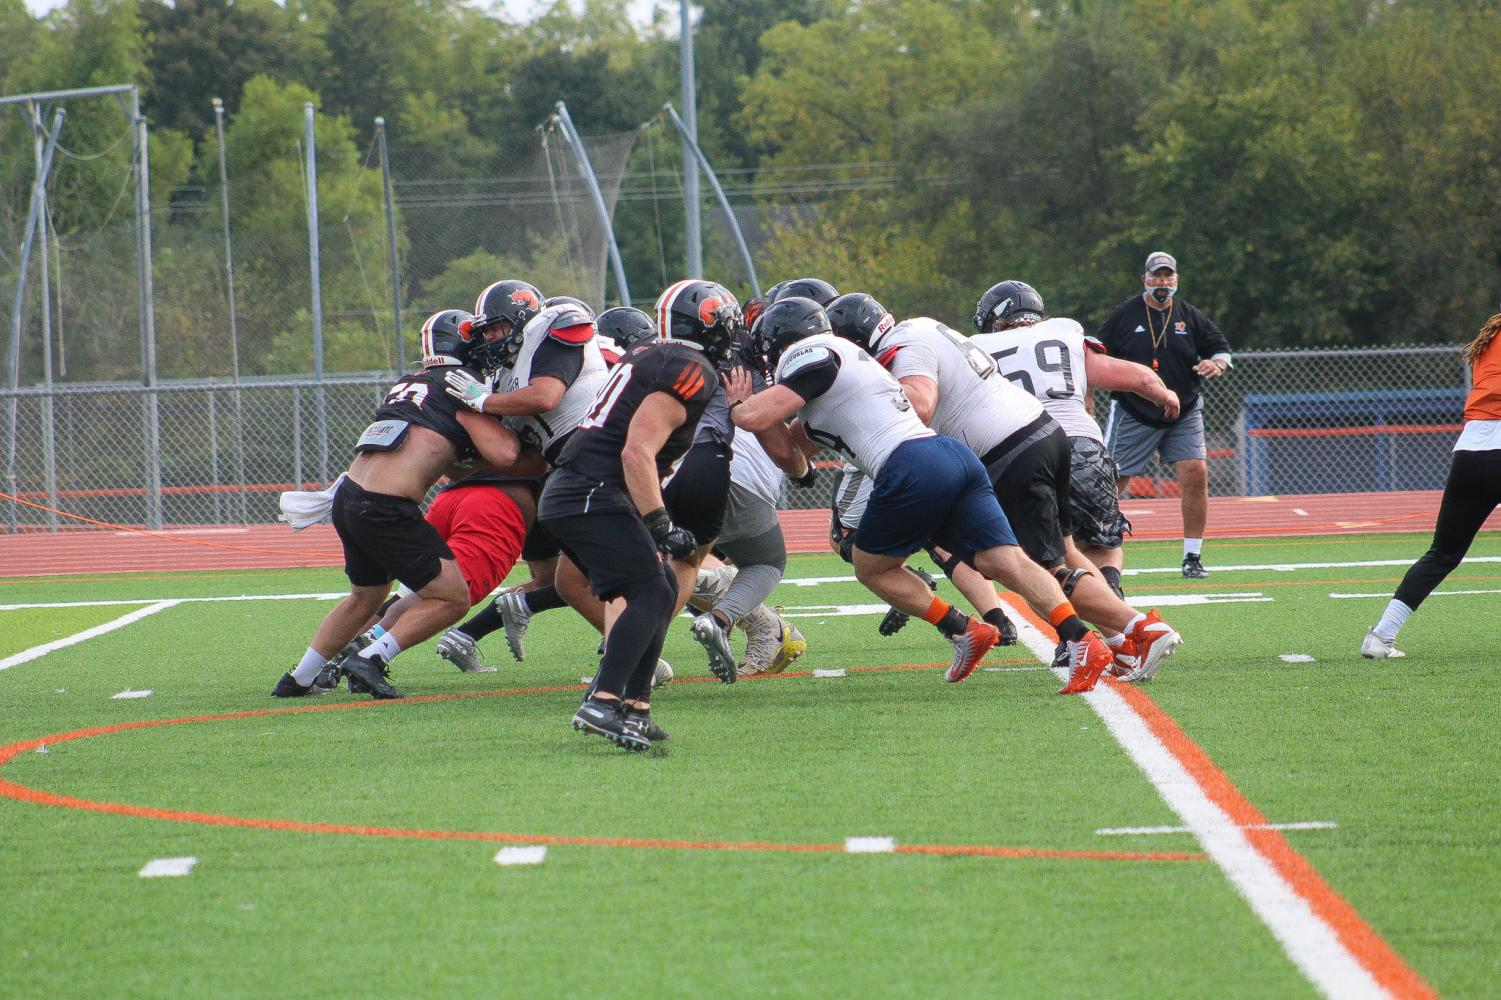 Baker University Football to allow spectators at home opener